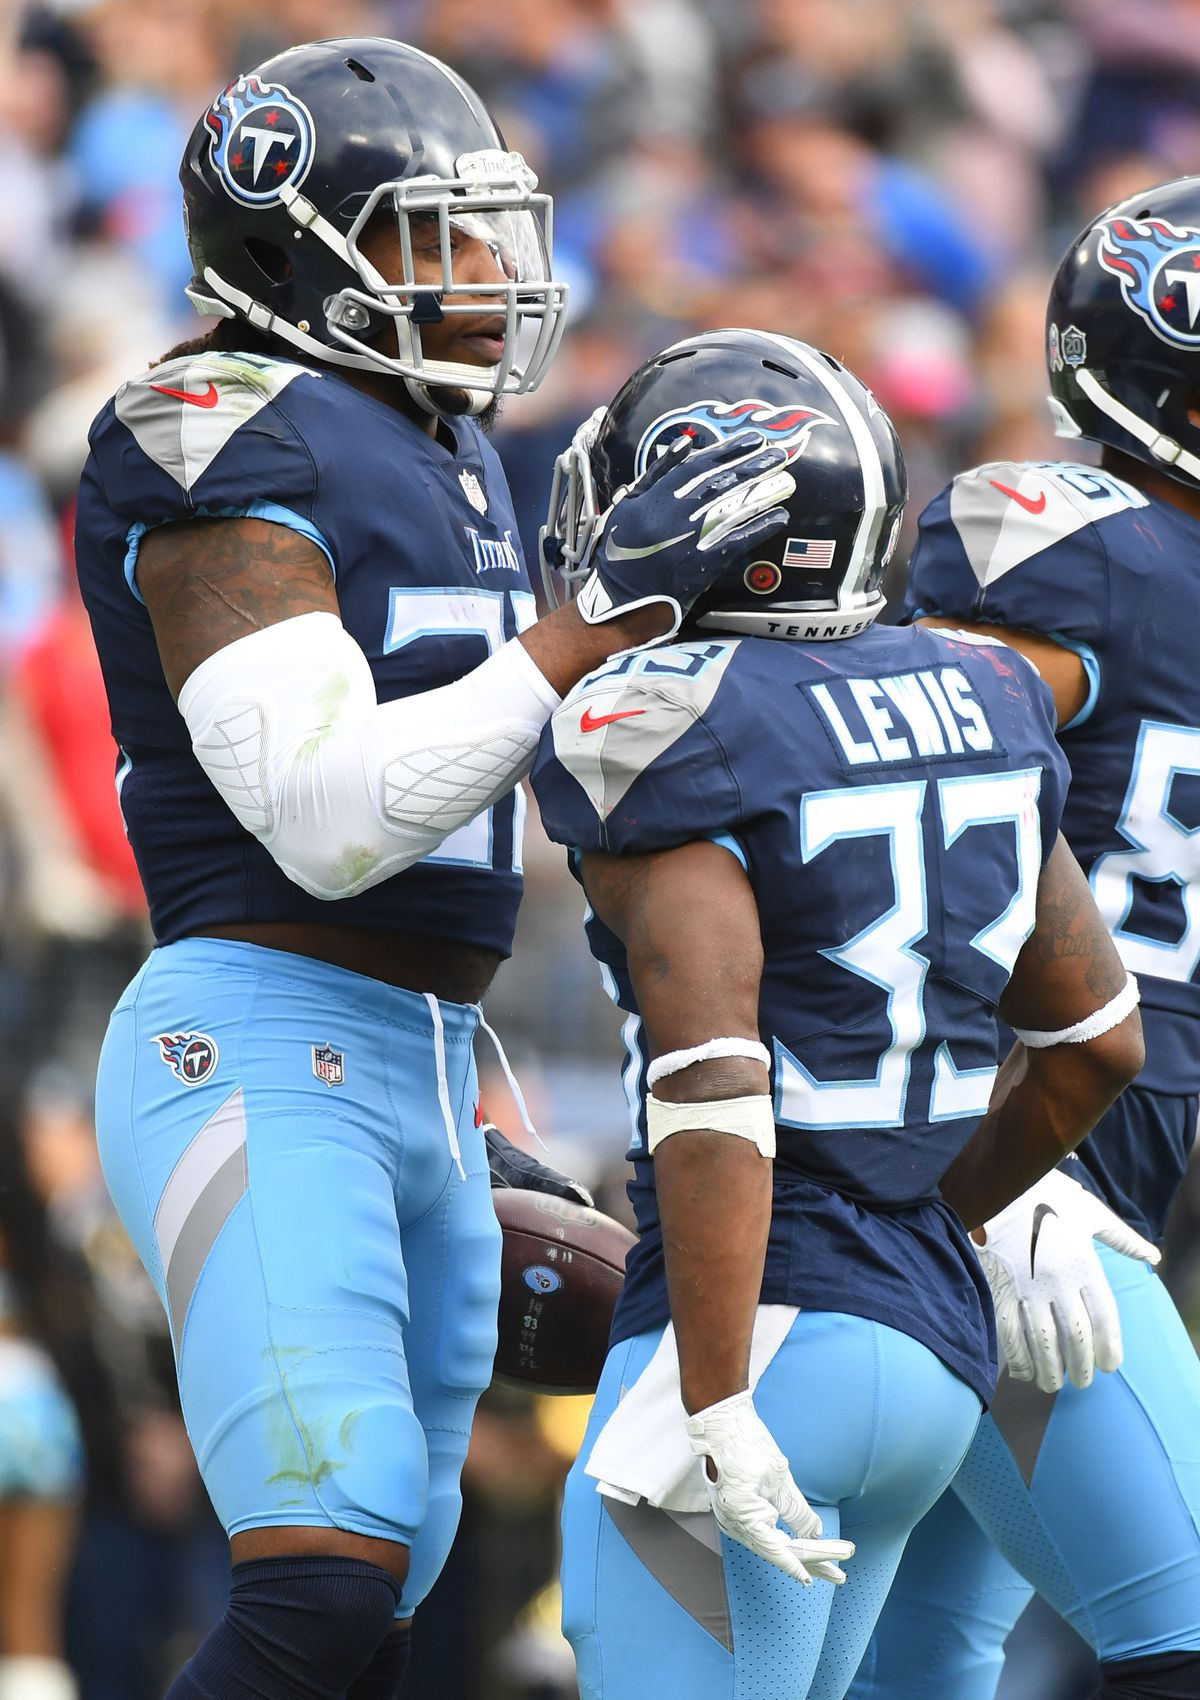 NFL: New England Patriots at Tennessee Titans